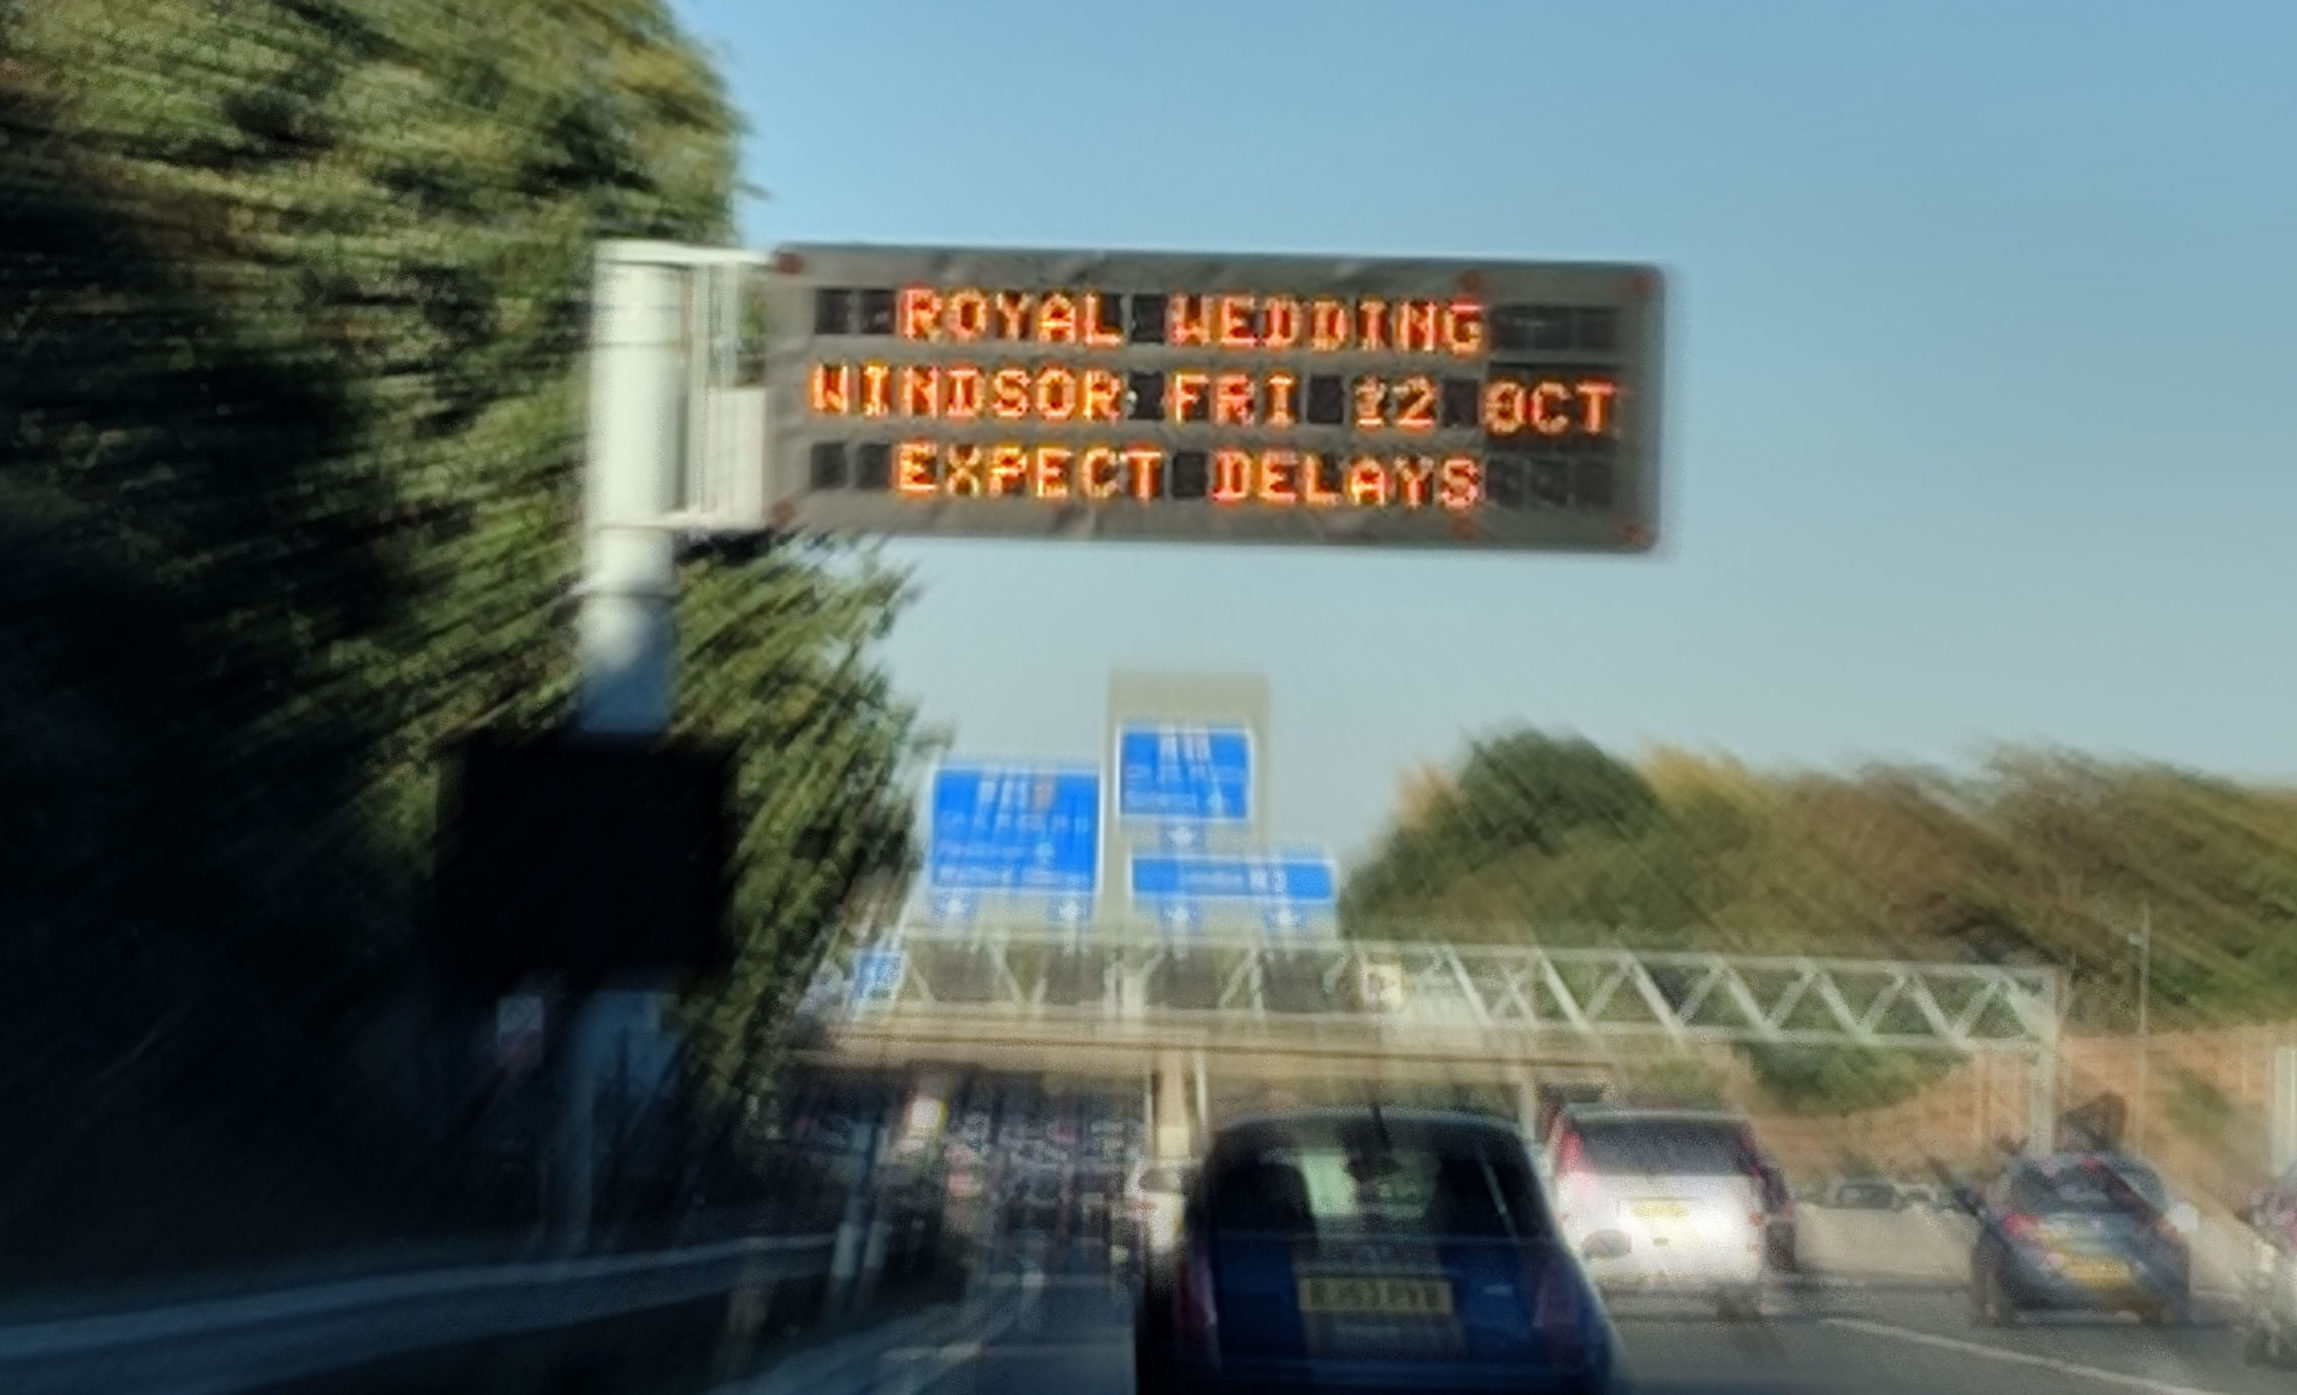 Overhead traffic sign warning of delays due to royal wedding